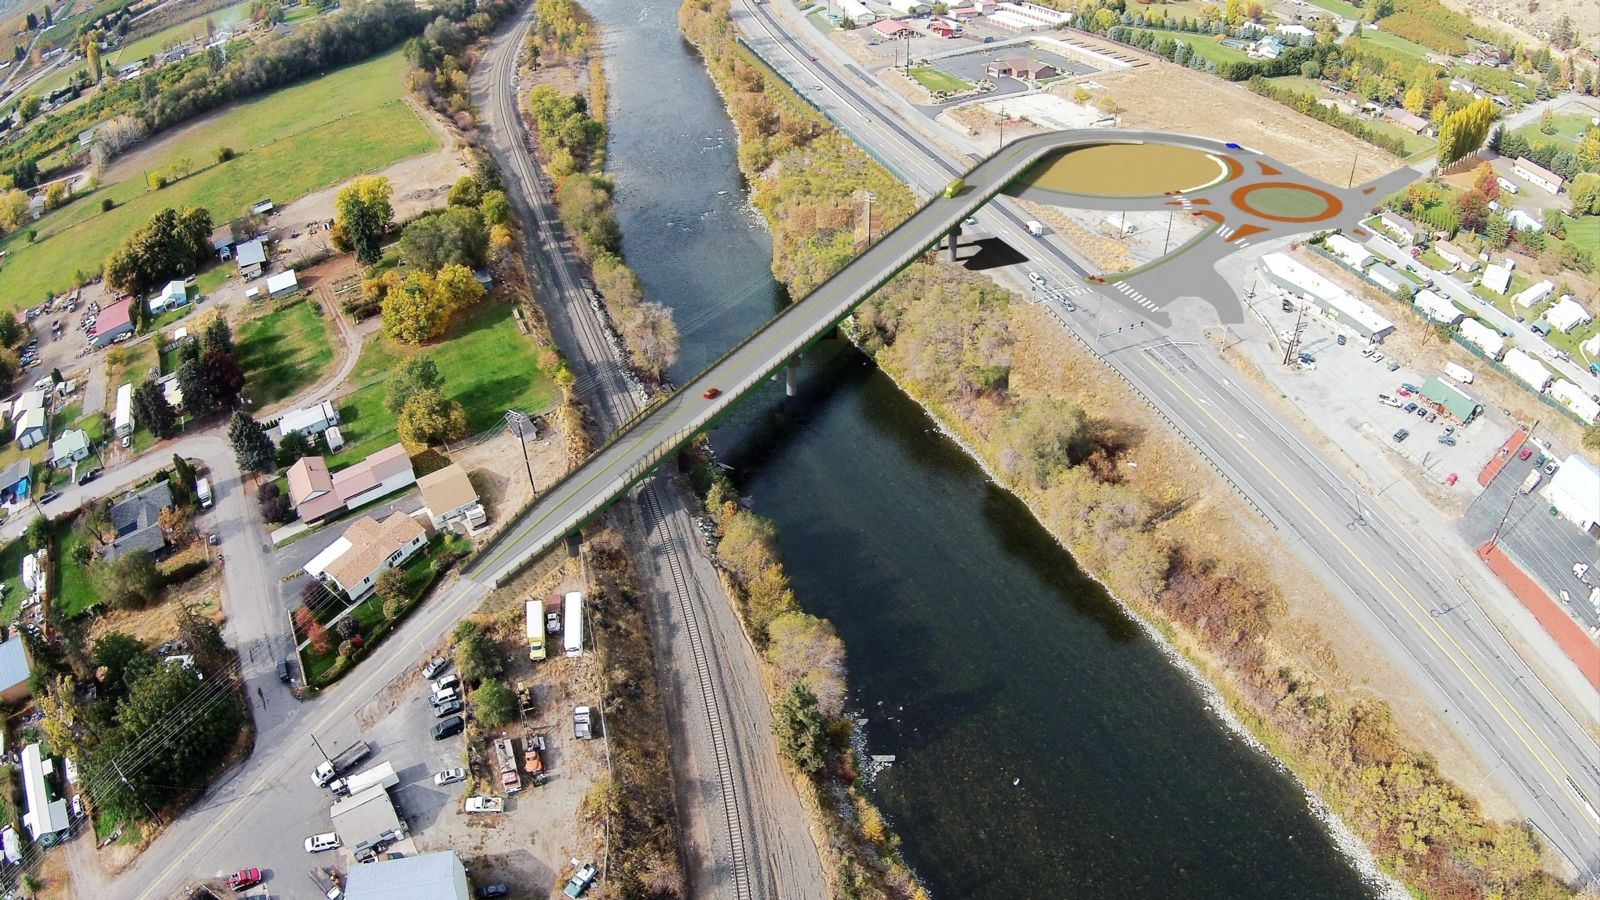 County awards $19.3 million contract to build new Cashmere bridge